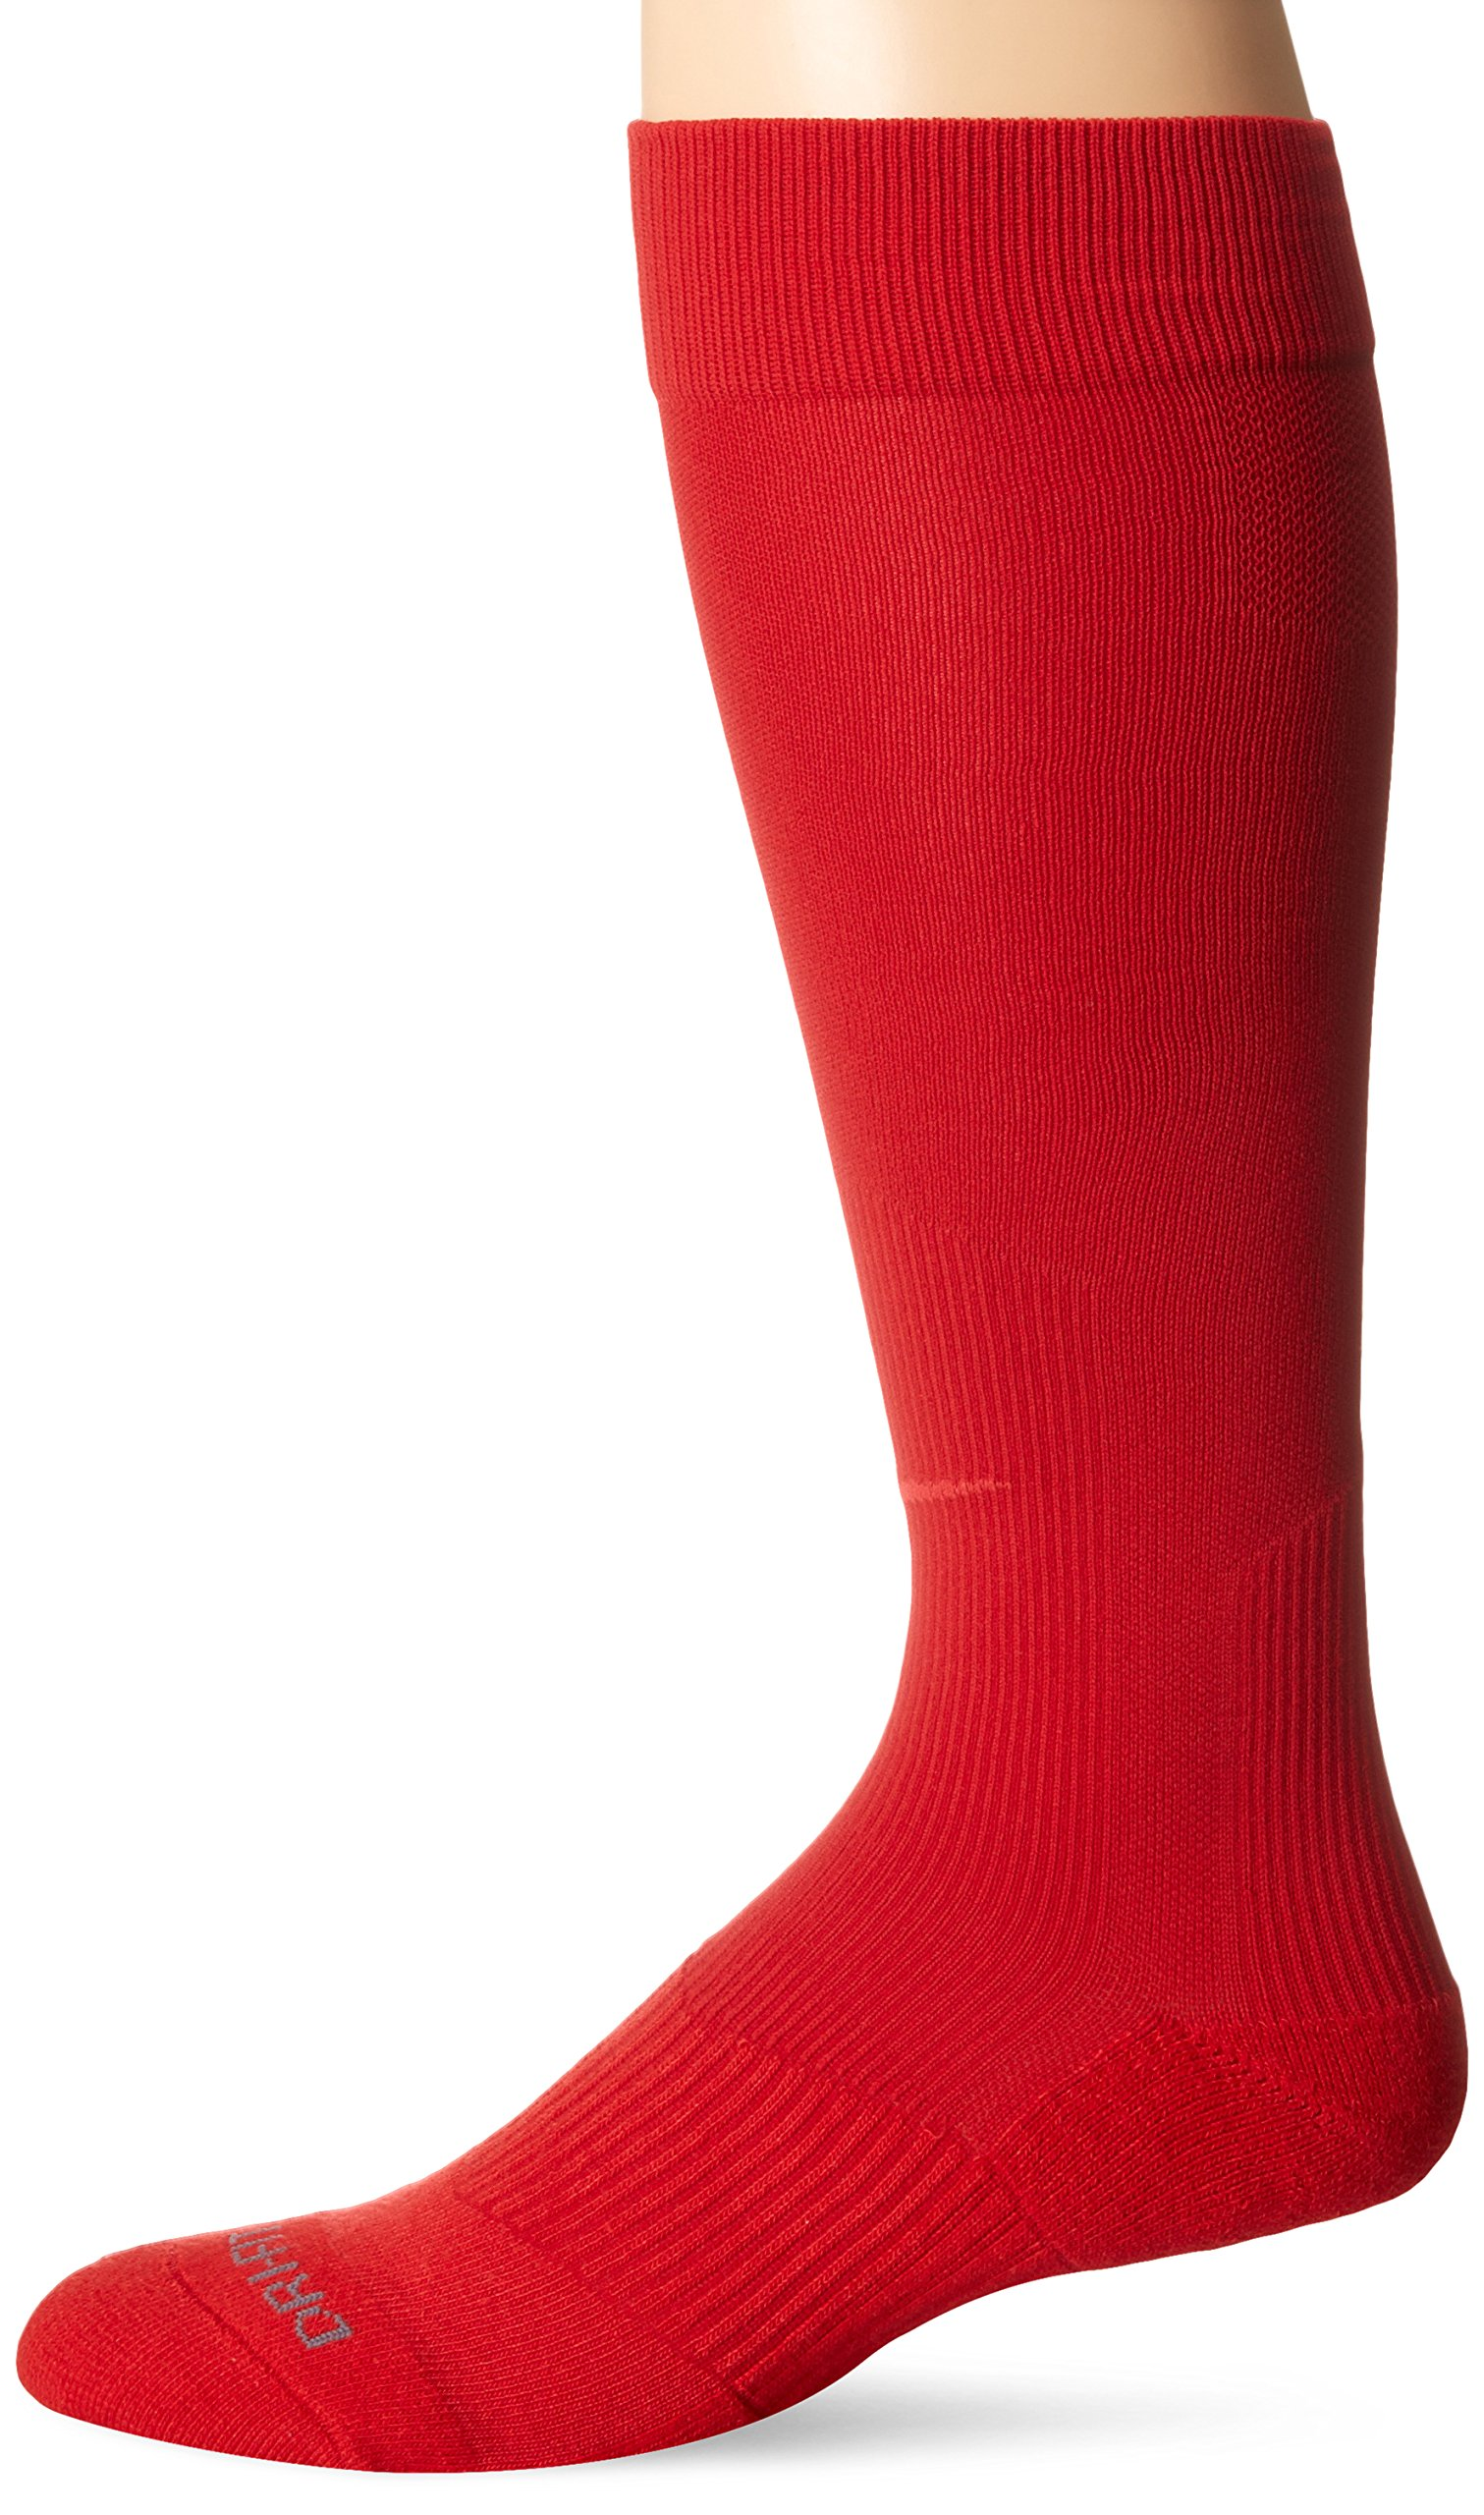 Nike Performance Knee-High Baseball Sock University Red Size Medium by Nike